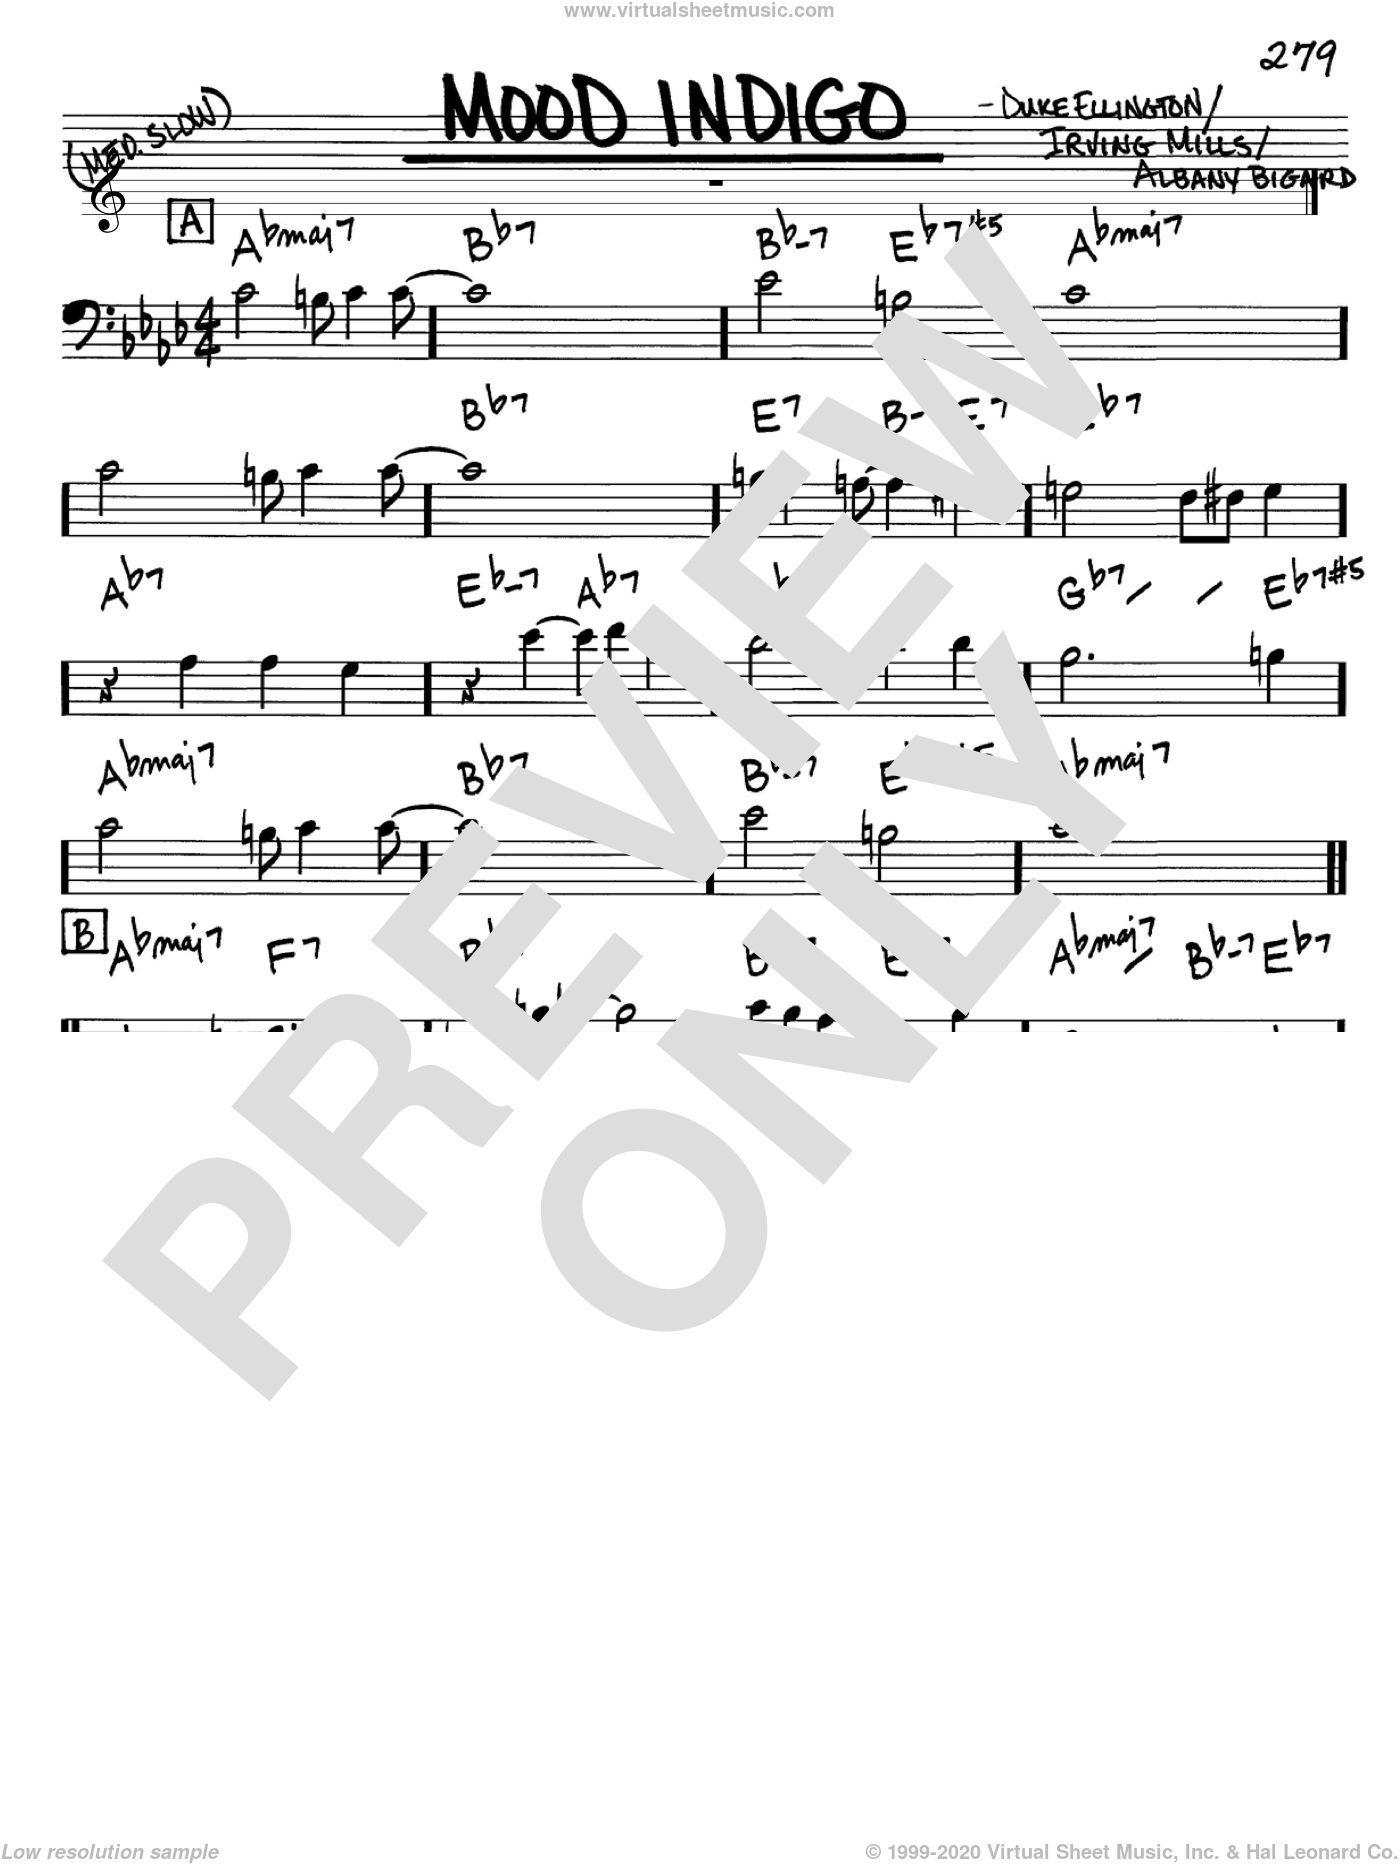 Mood Indigo sheet music for voice and other instruments (Bass Clef ) by Irving Mills, Albany Bigard and Duke Ellington. Score Image Preview.